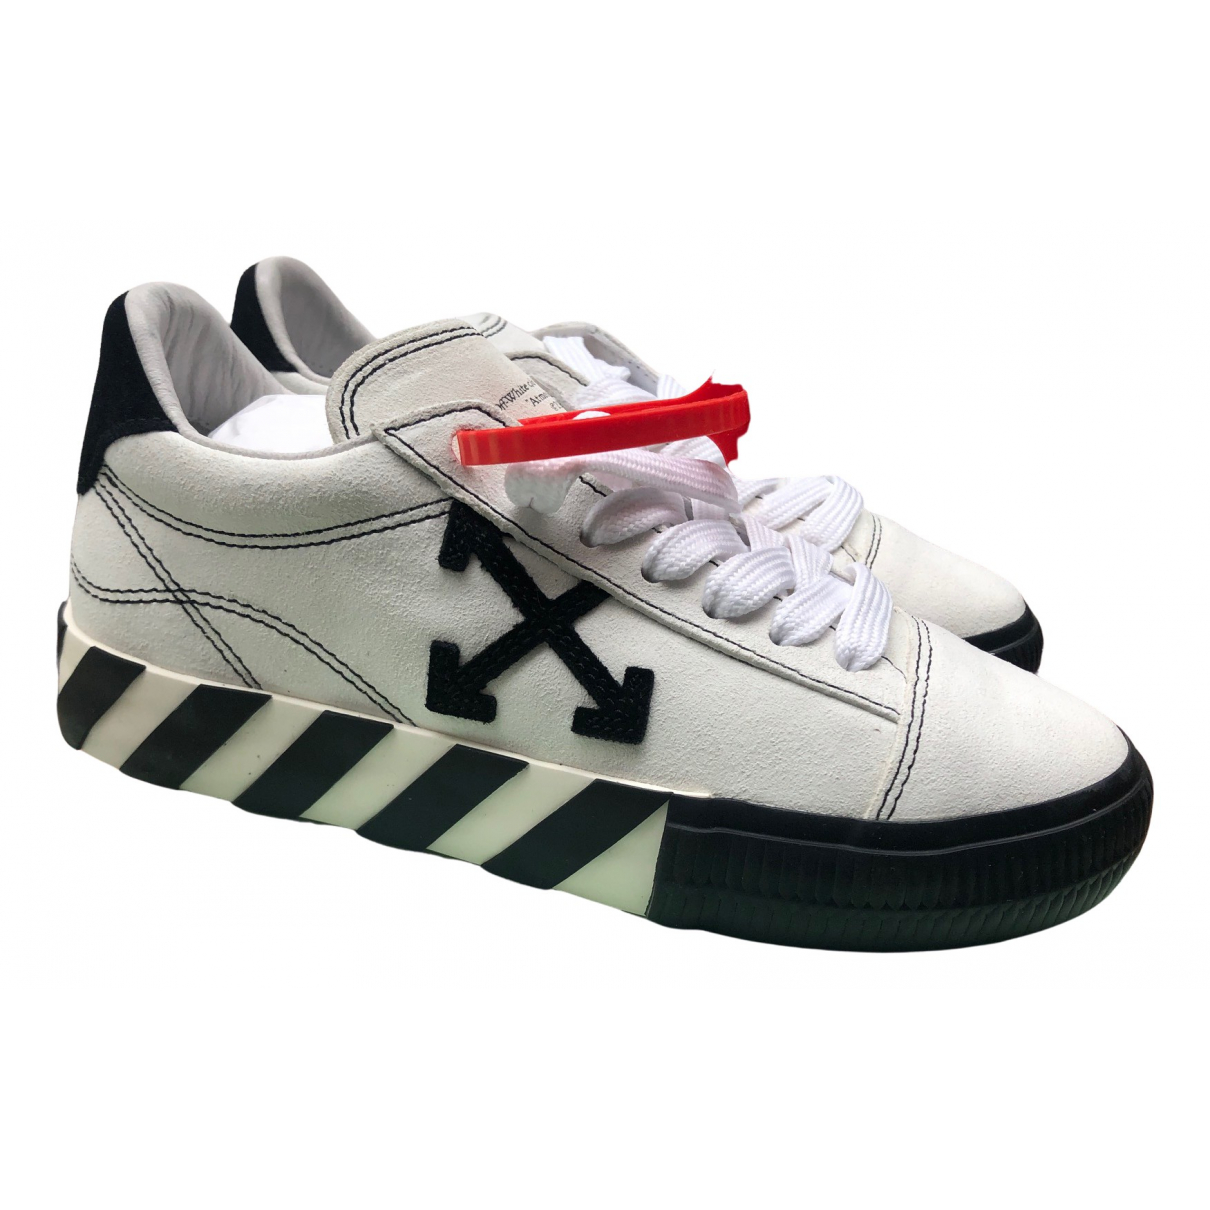 Off-white Vulcalized White Leather Trainers for Women 36 EU